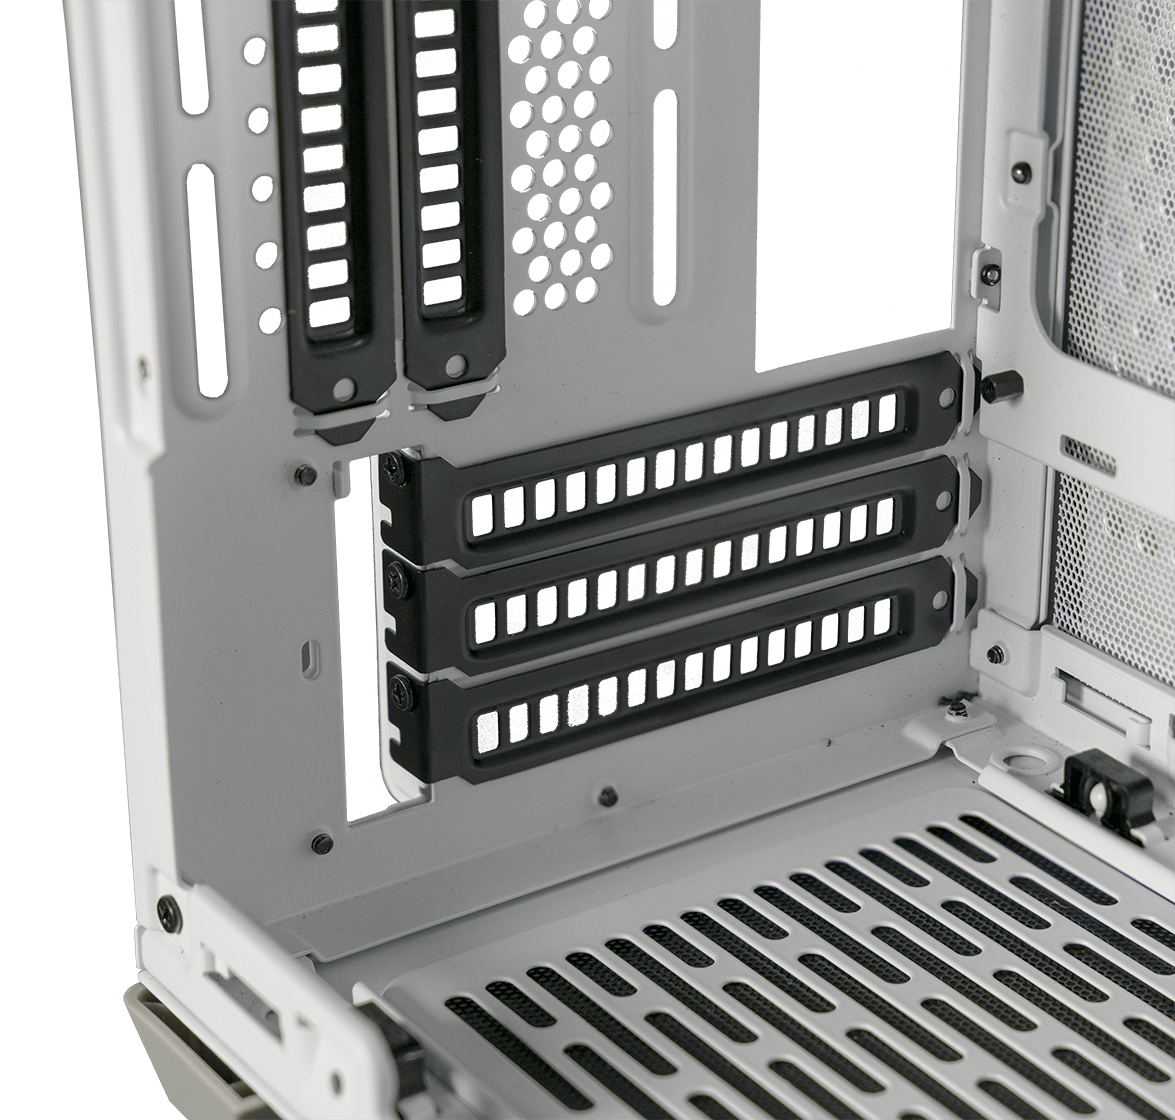 Triple-slot GPU support and Included Vertical Riser Cable